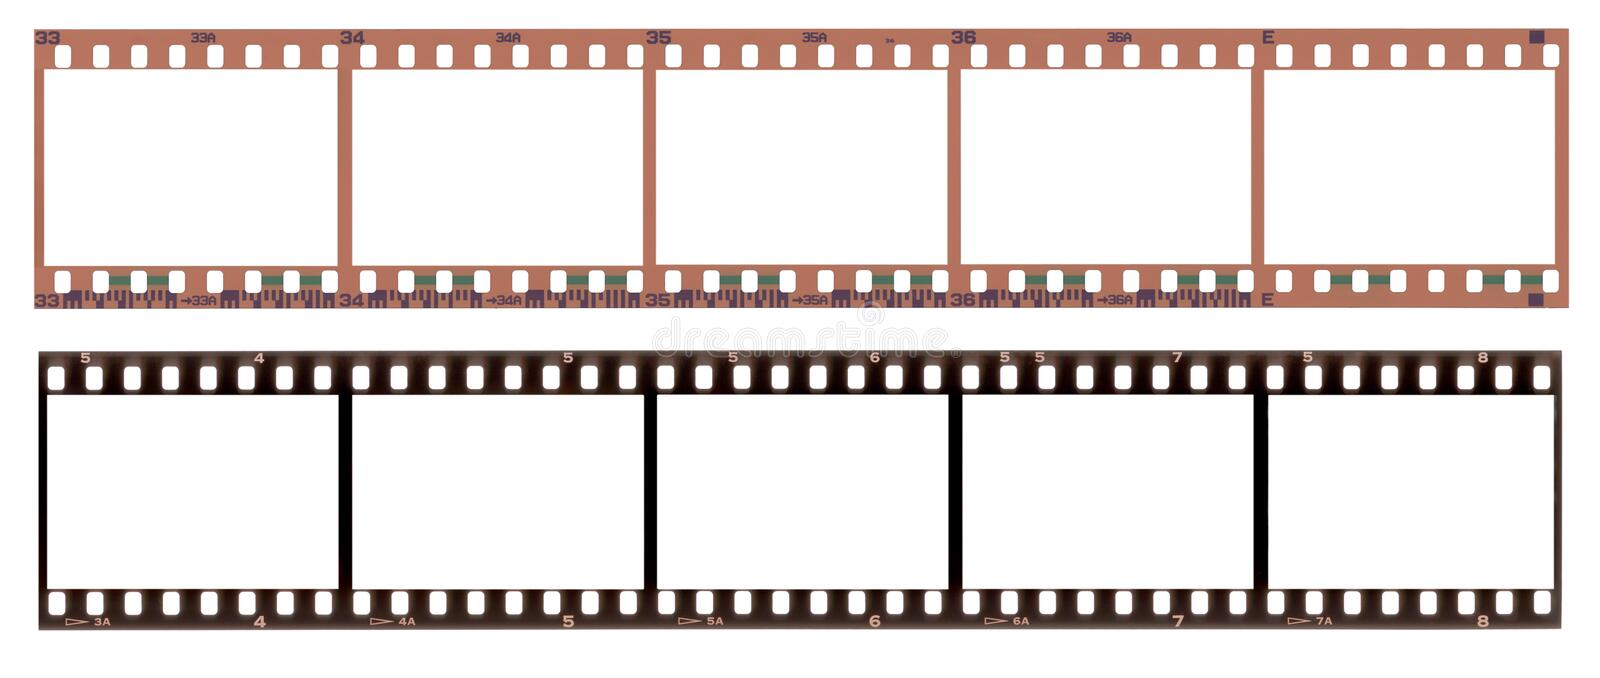 Film frames vector illustration